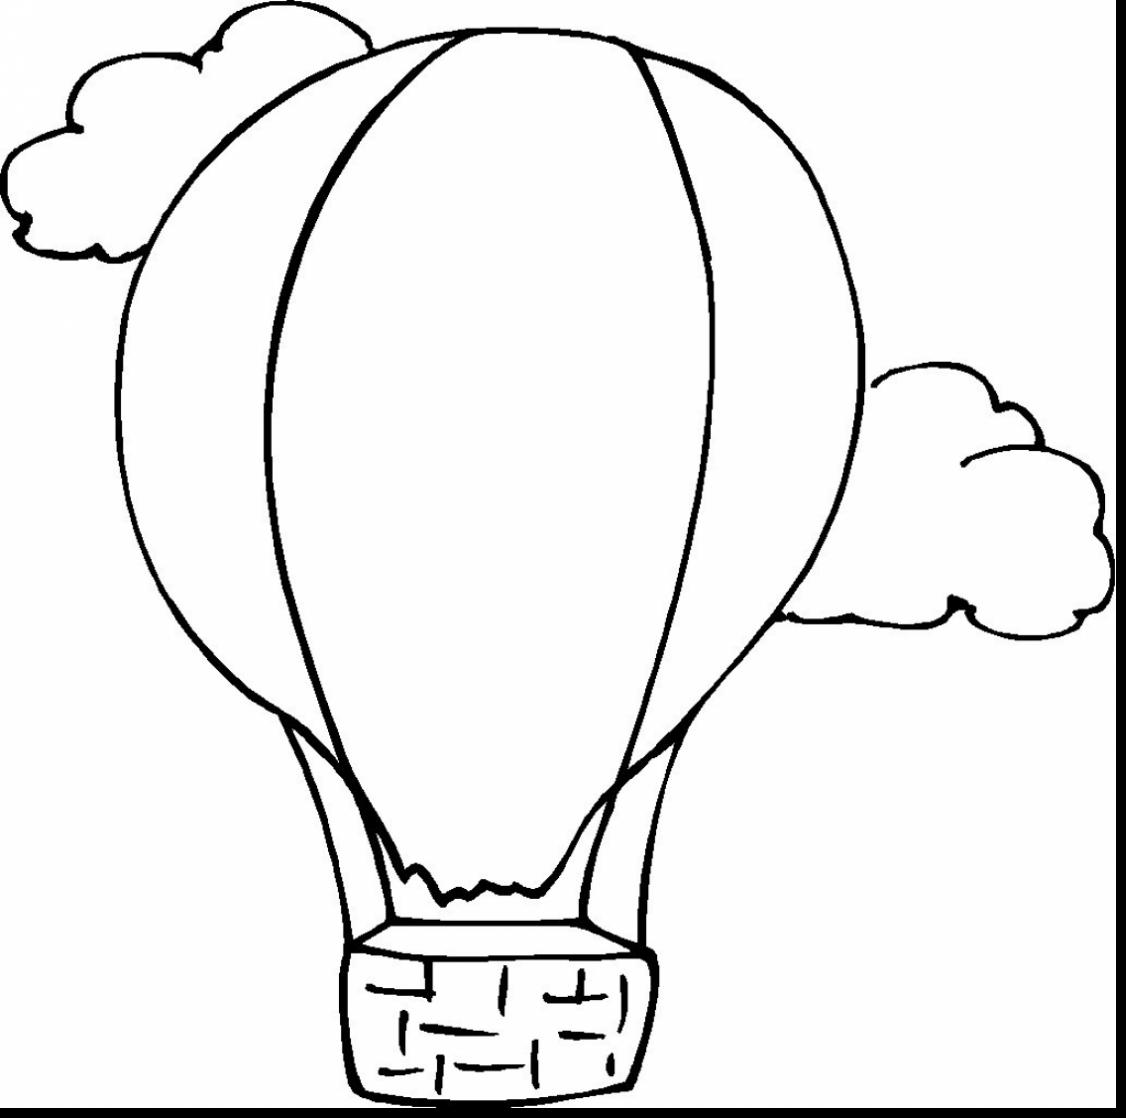 1126x1118 Superb Hot Air Balloon Drawing With Hot Air Balloon Coloring Page